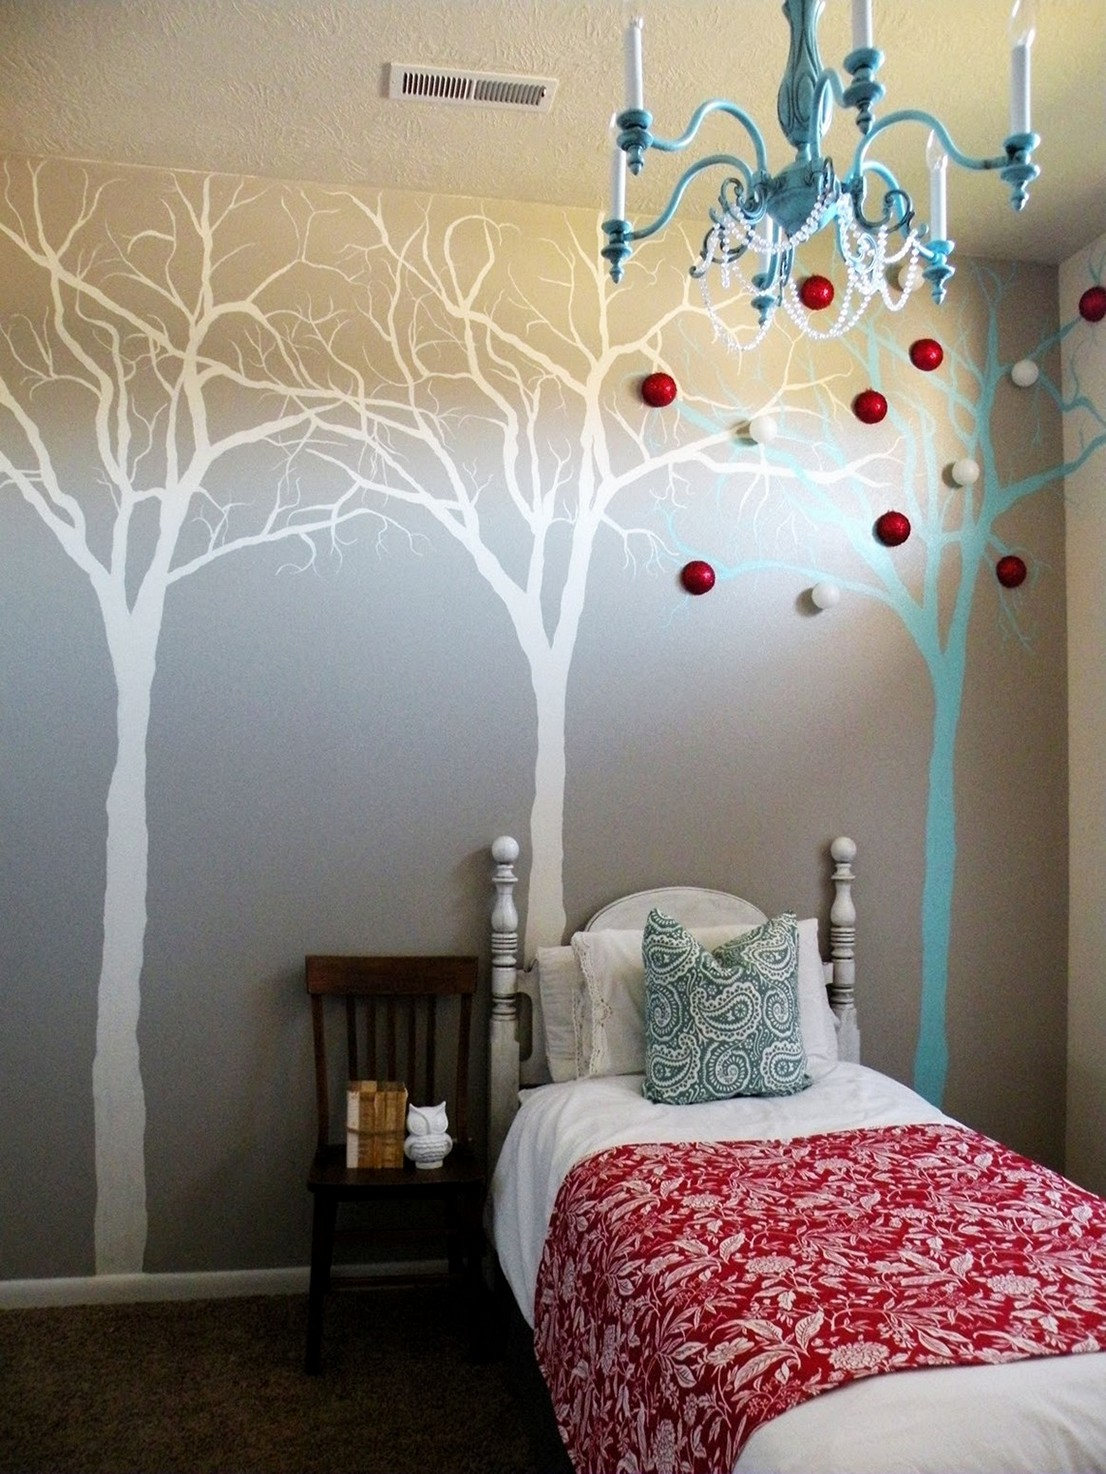 60 Classy And Marvelous Bedroom Wall Design Ideas The